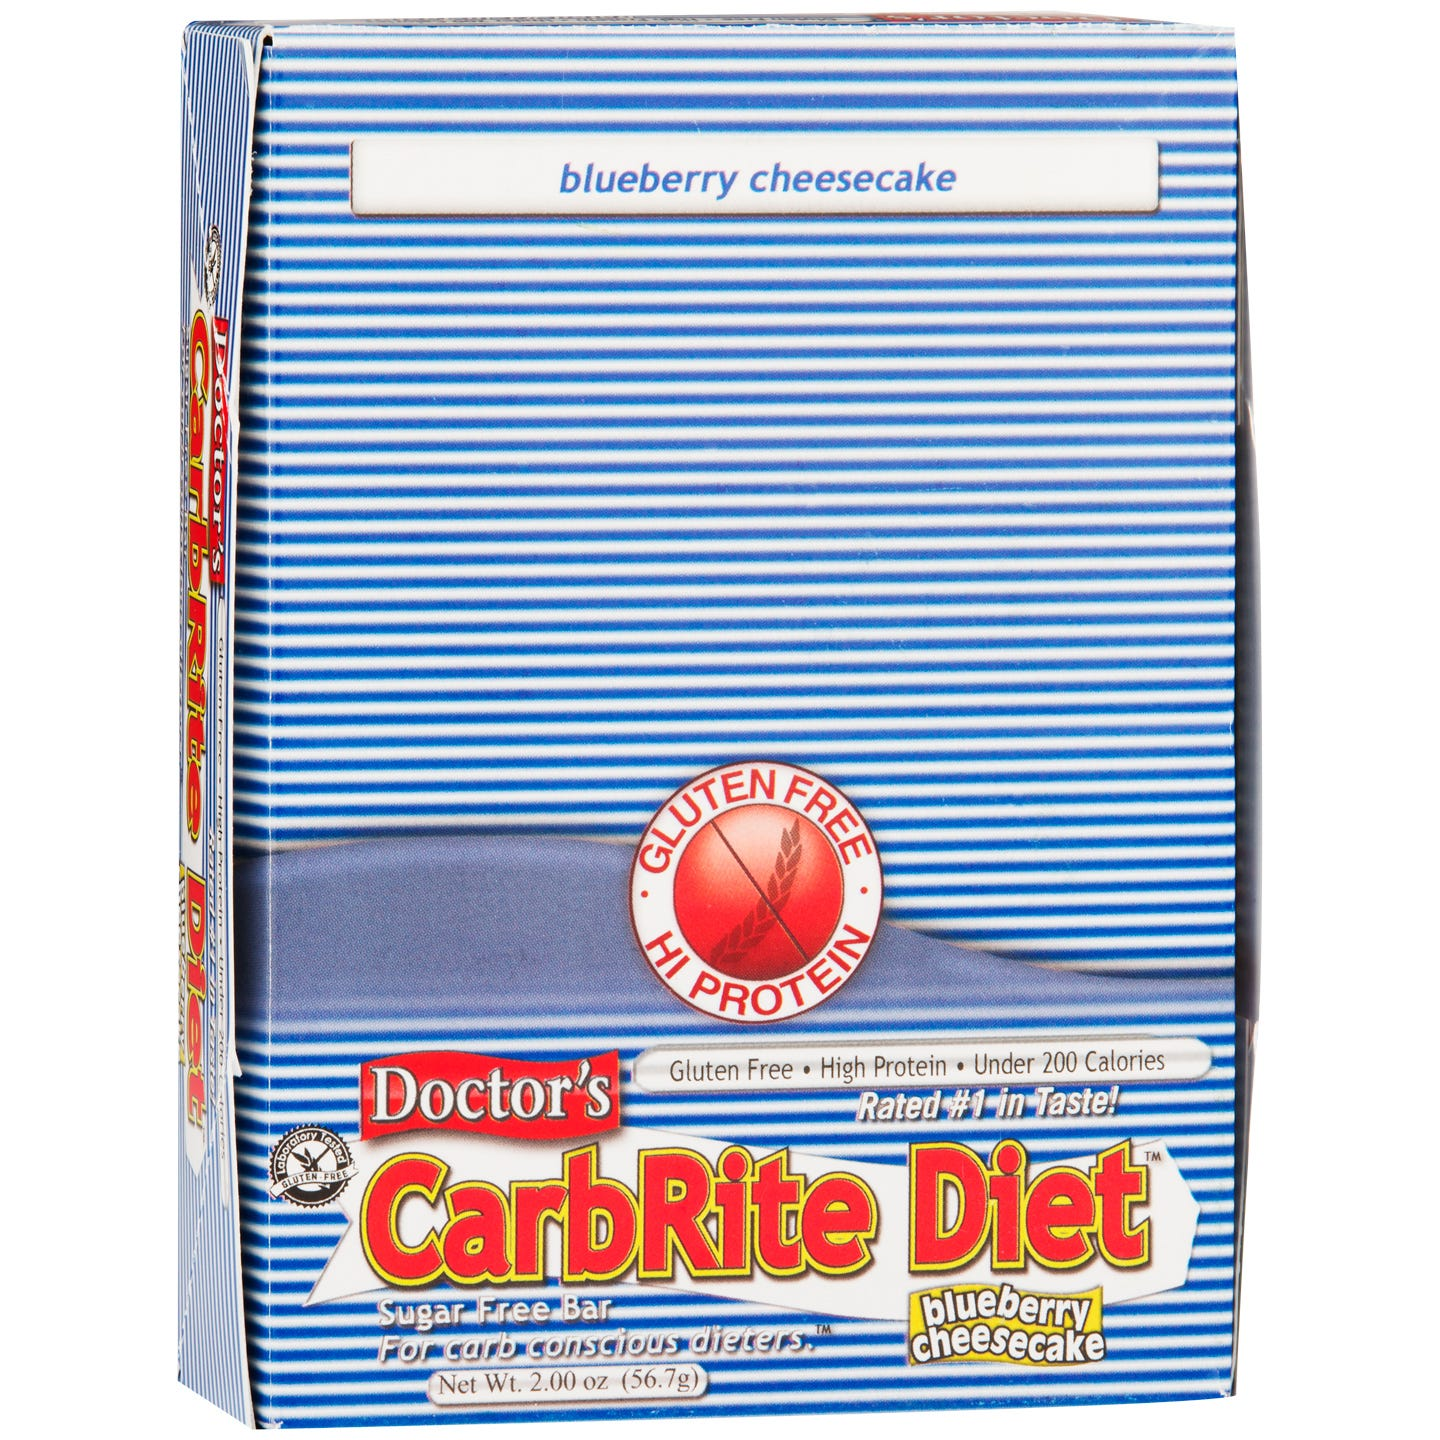 Protein Bars Blueberry Cheesecake (12 ct) - Doctor's CarbRite Diet - Rapid Diet Weight Loss Products Shop